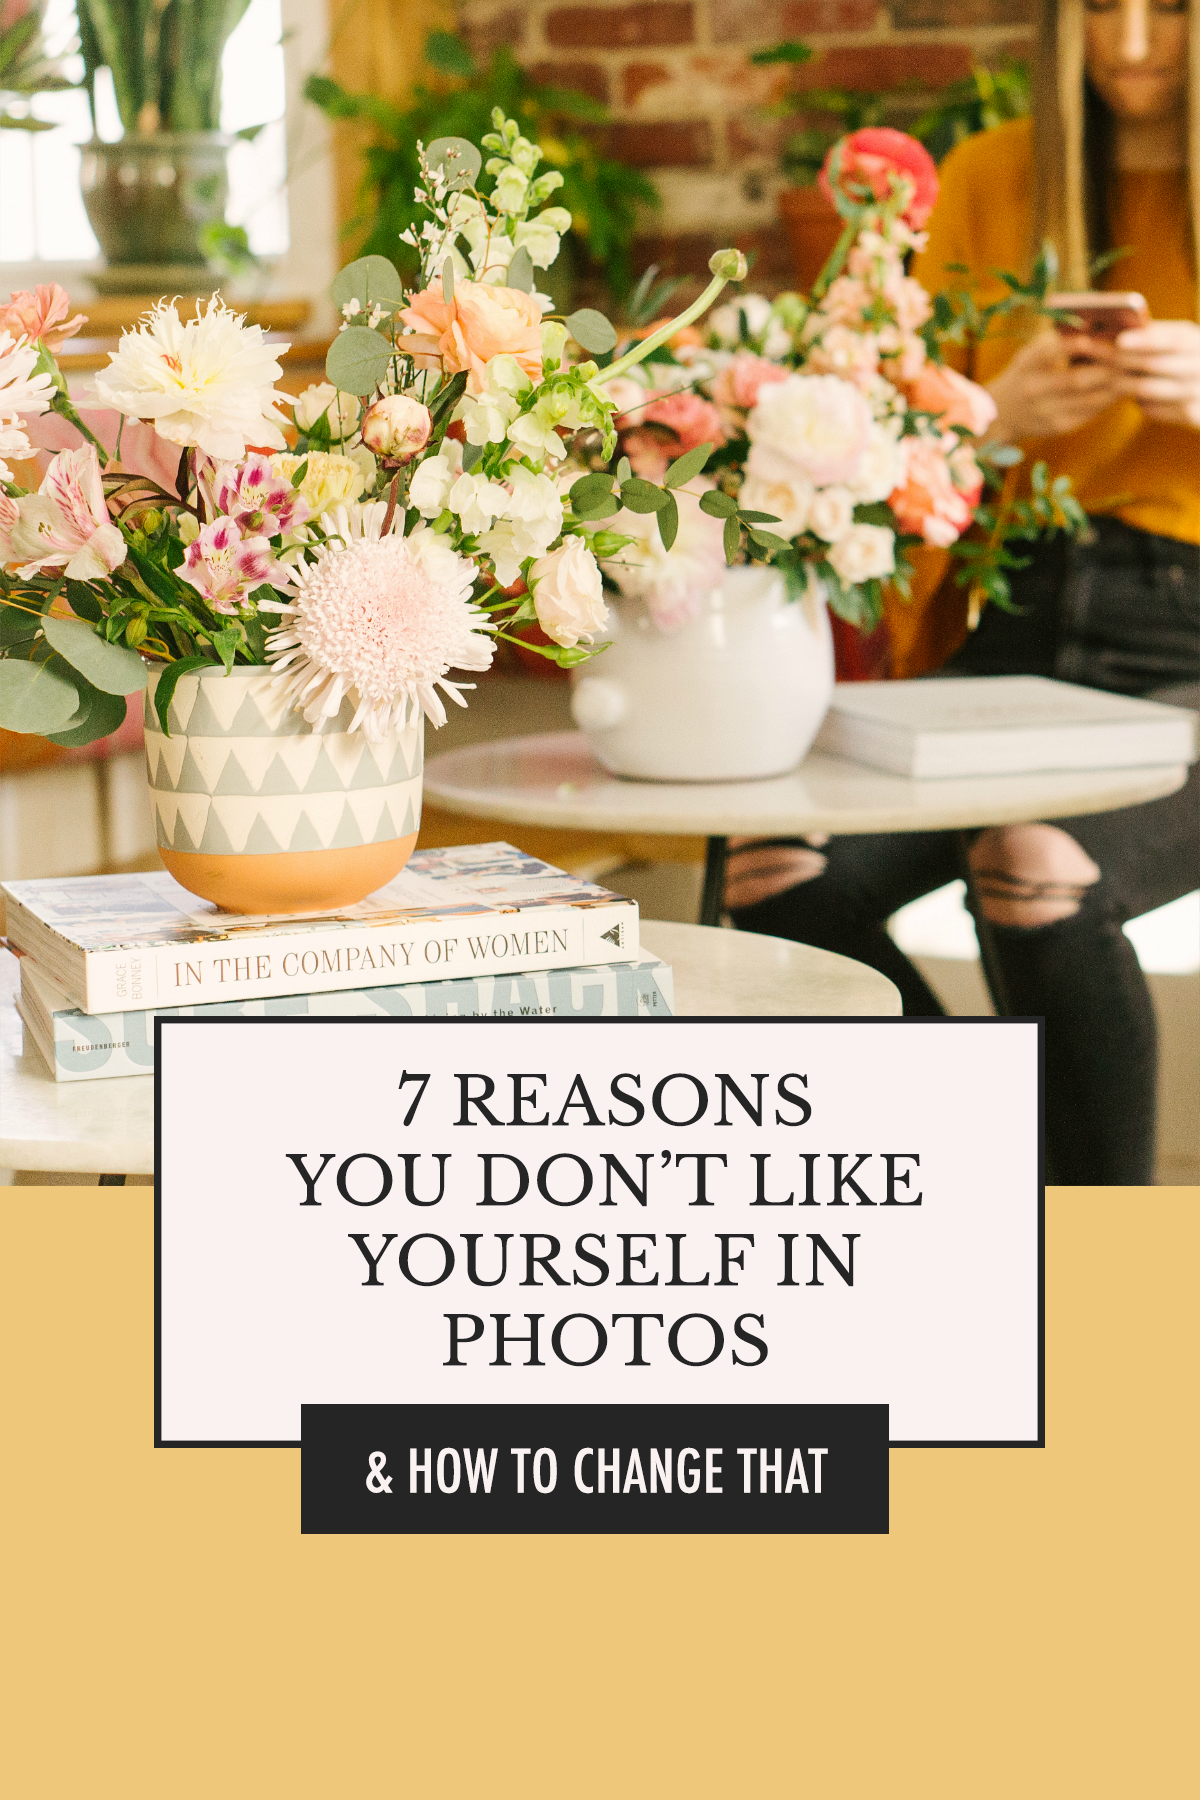 Blog 7 Reasons You Don't Like Yourself in Photos.png